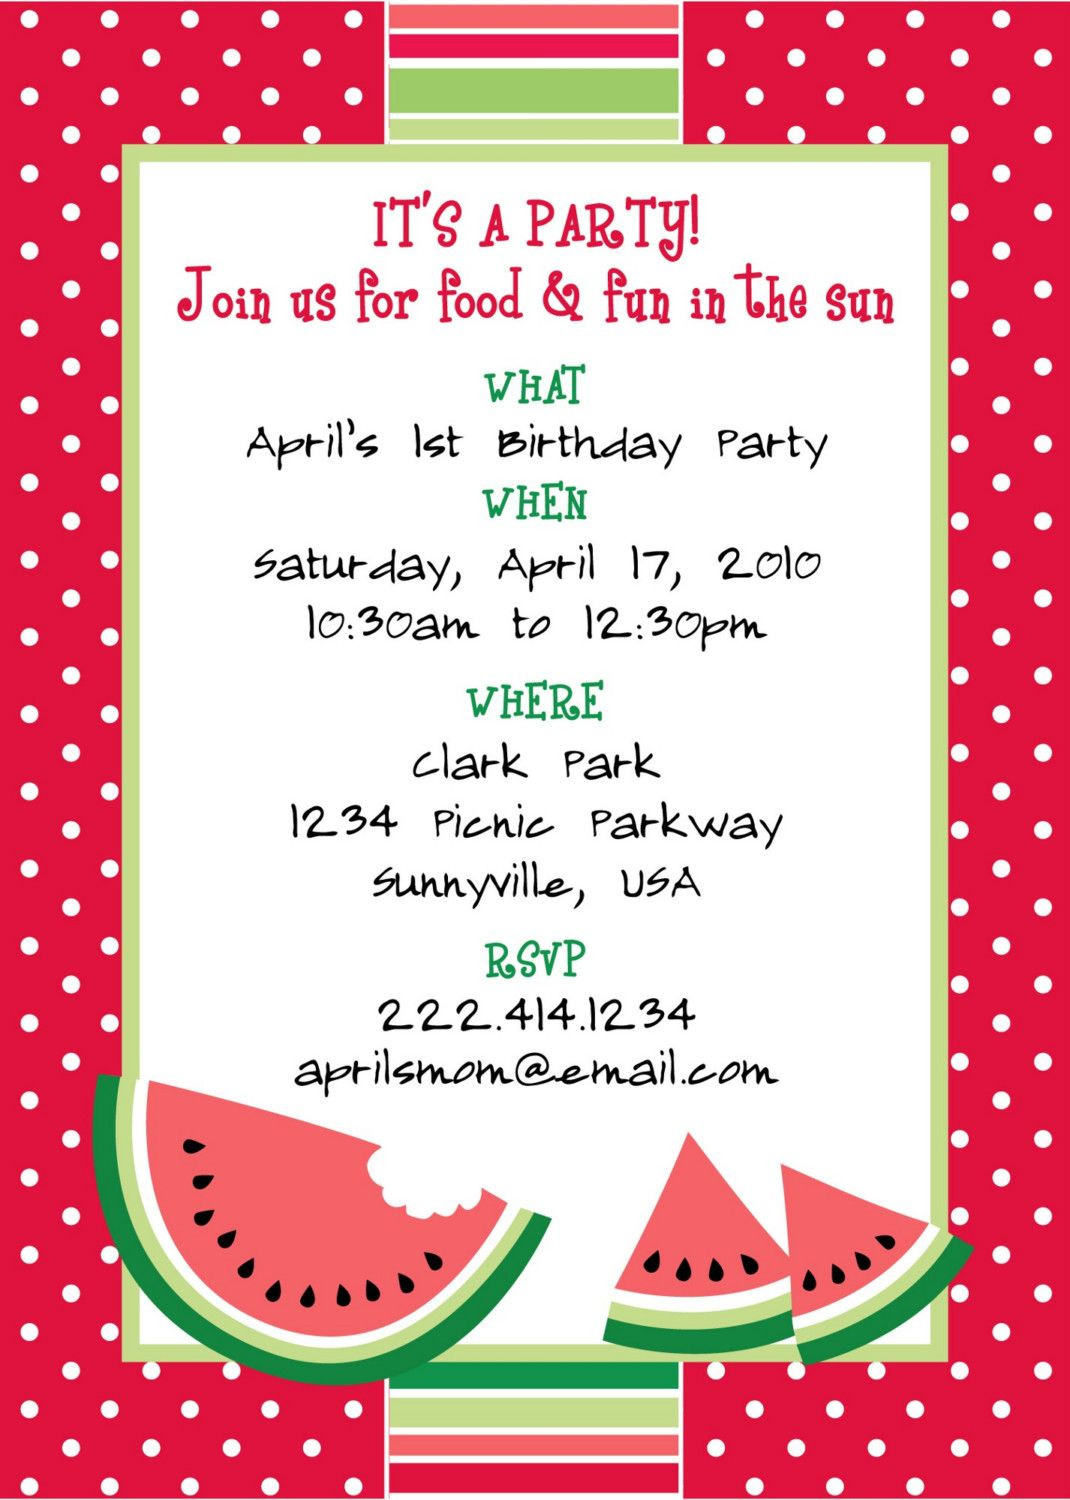 Best ideas about Birthday Party Templates . Save or Pin Picnic Invitations Pdf Invitation Templates Now.